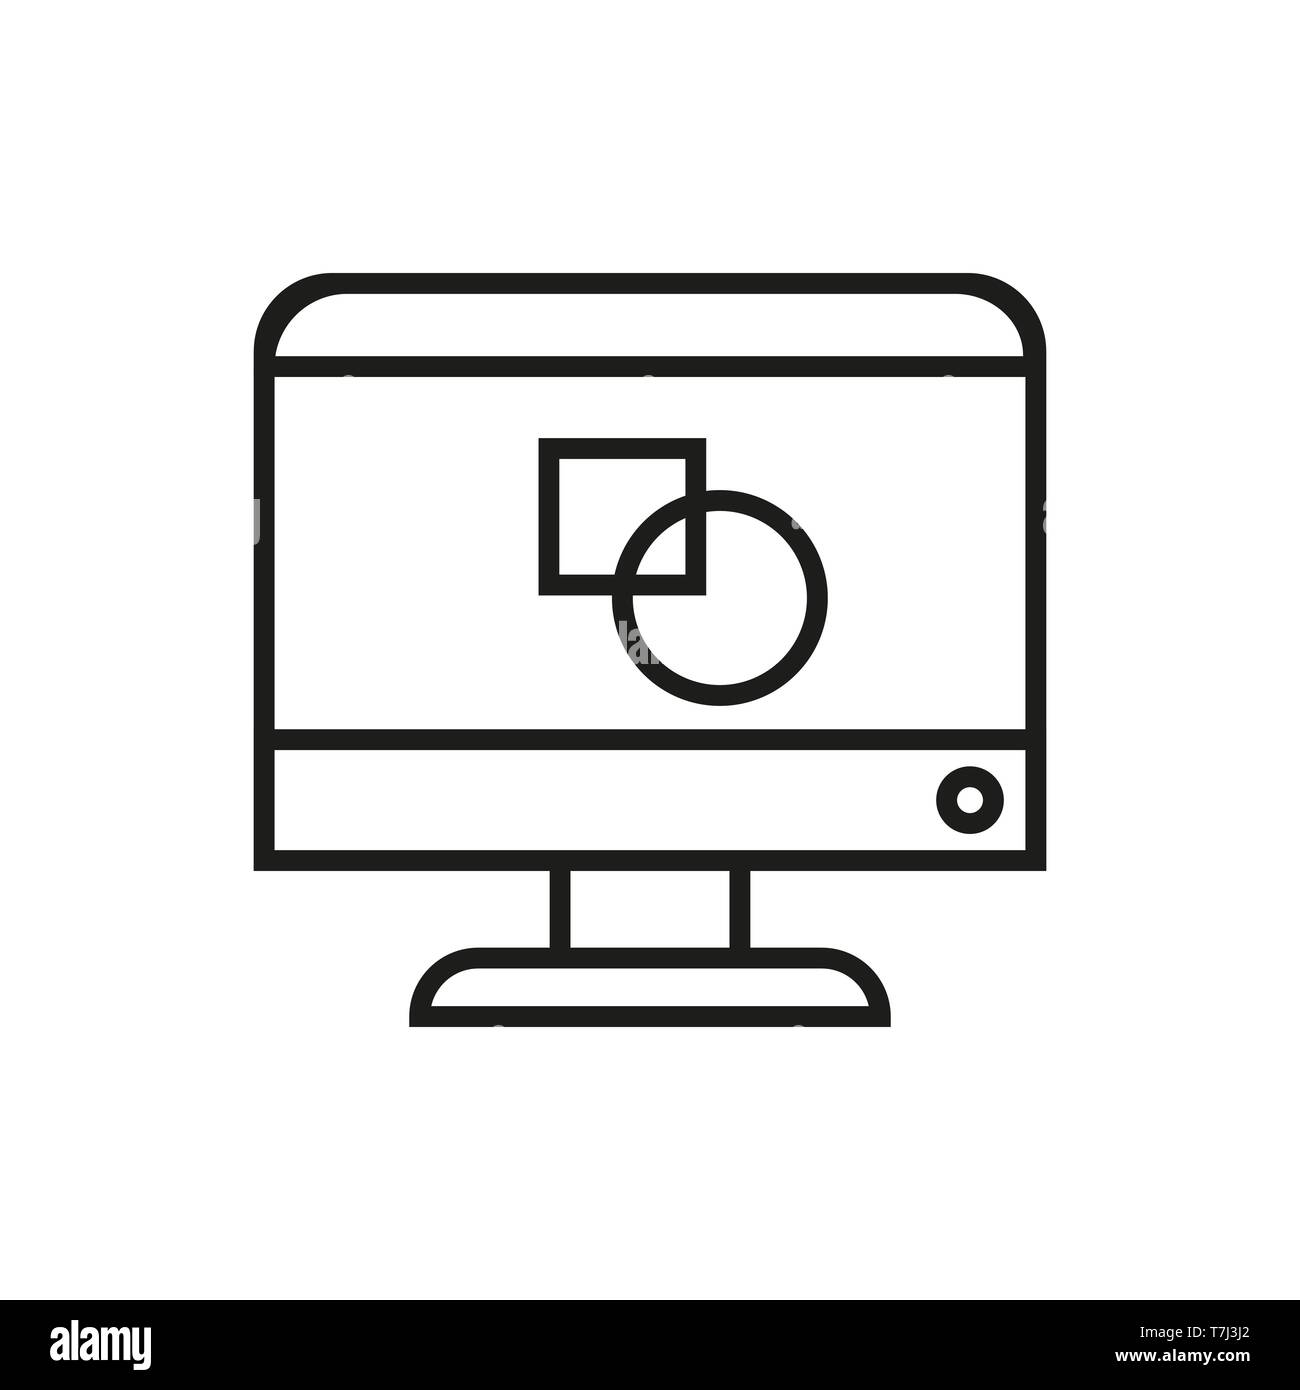 hight resolution of icon design line graphic vector outline web creative thin art pencil logo illustration drawing linear sign